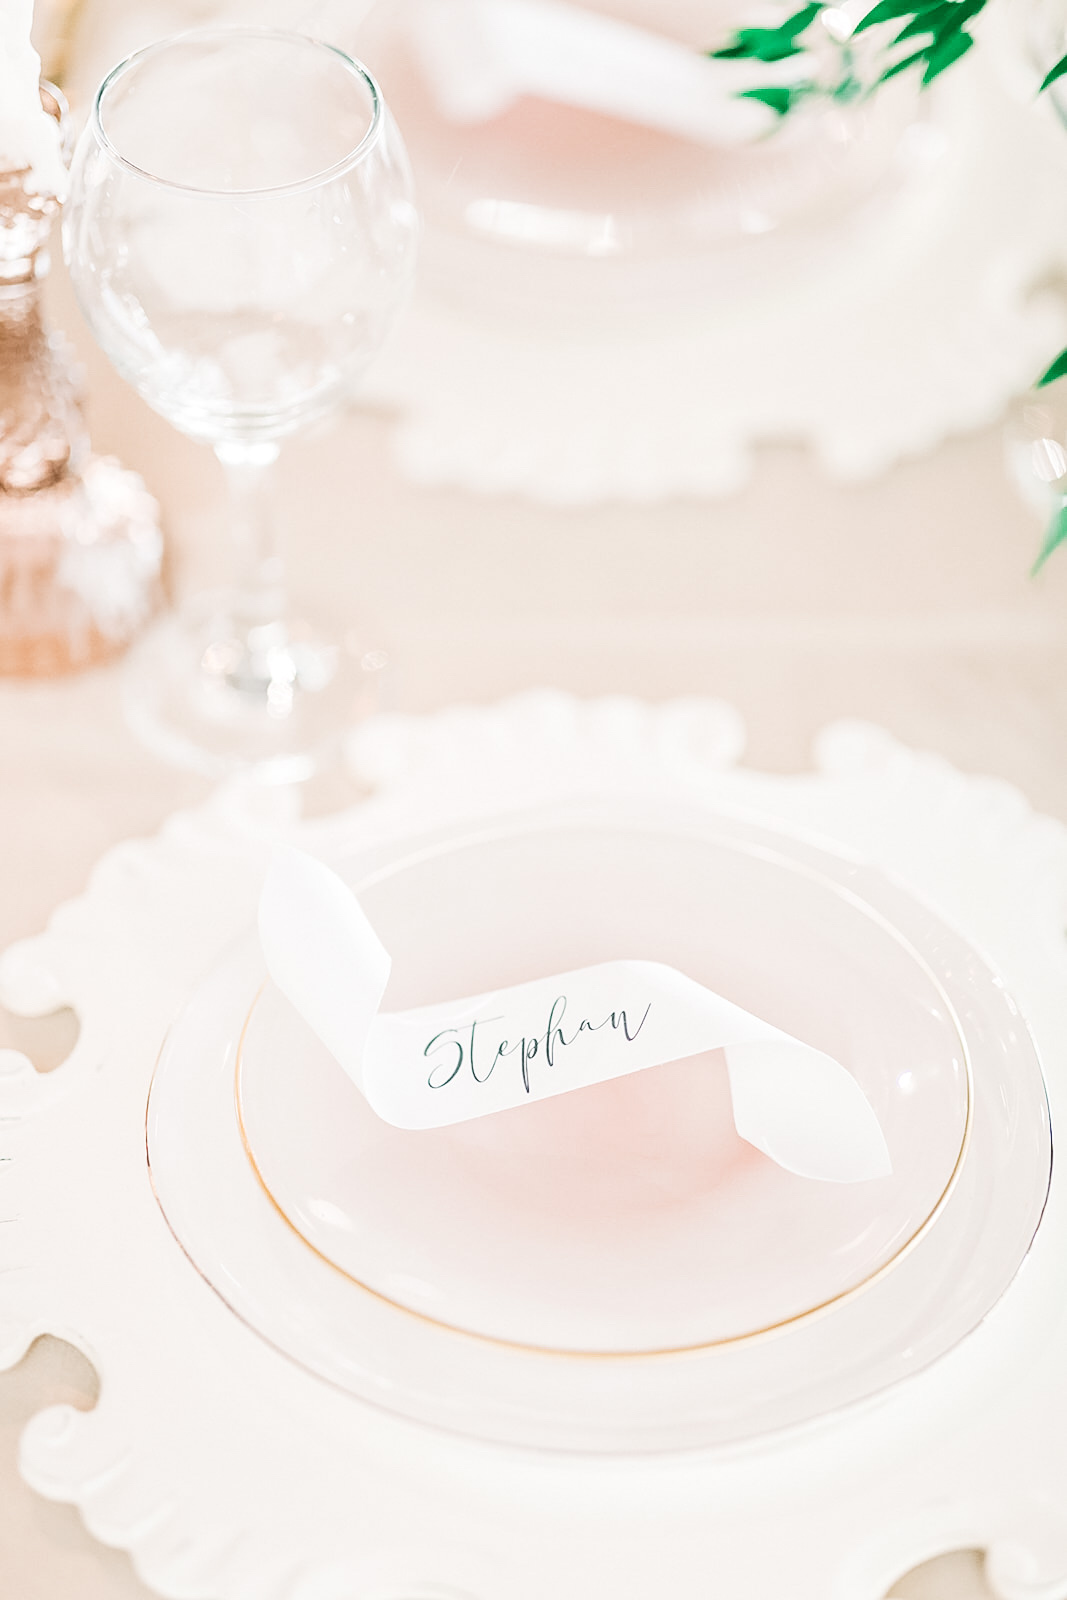 Romantic Wedding Place Cards | Curled Place Cards | Modern Calligraphy